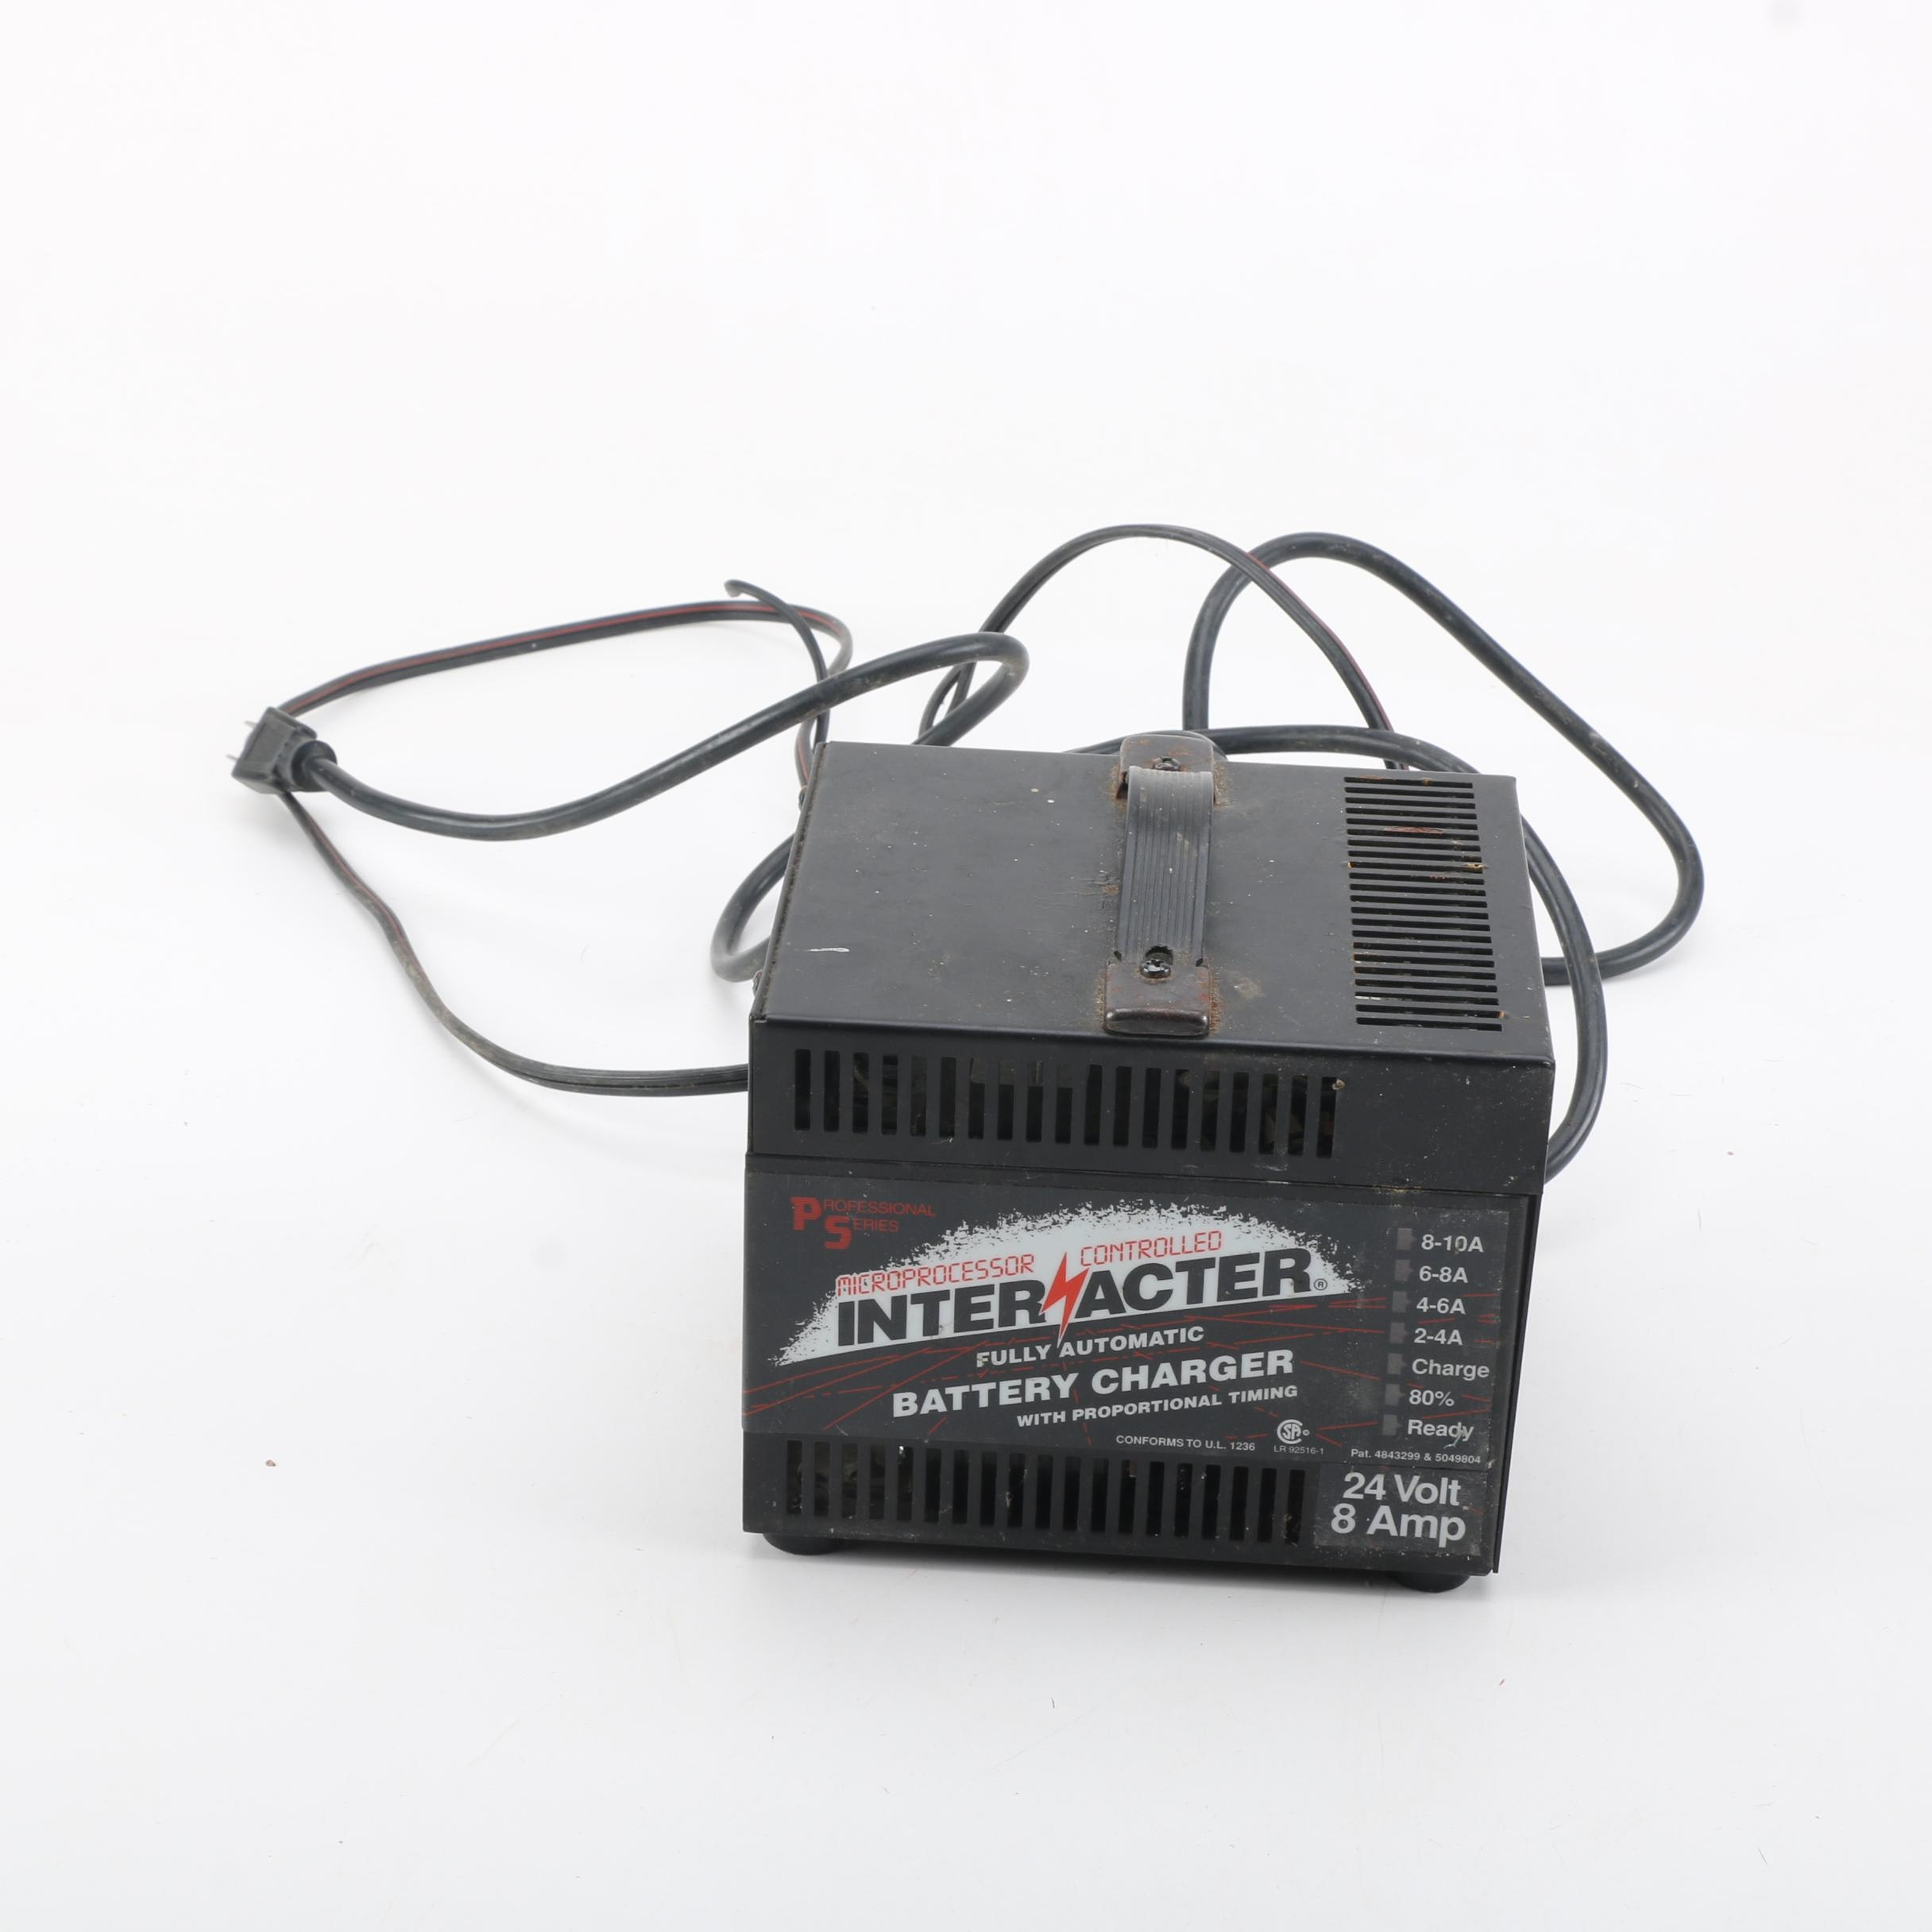 Interacter Battery Charger